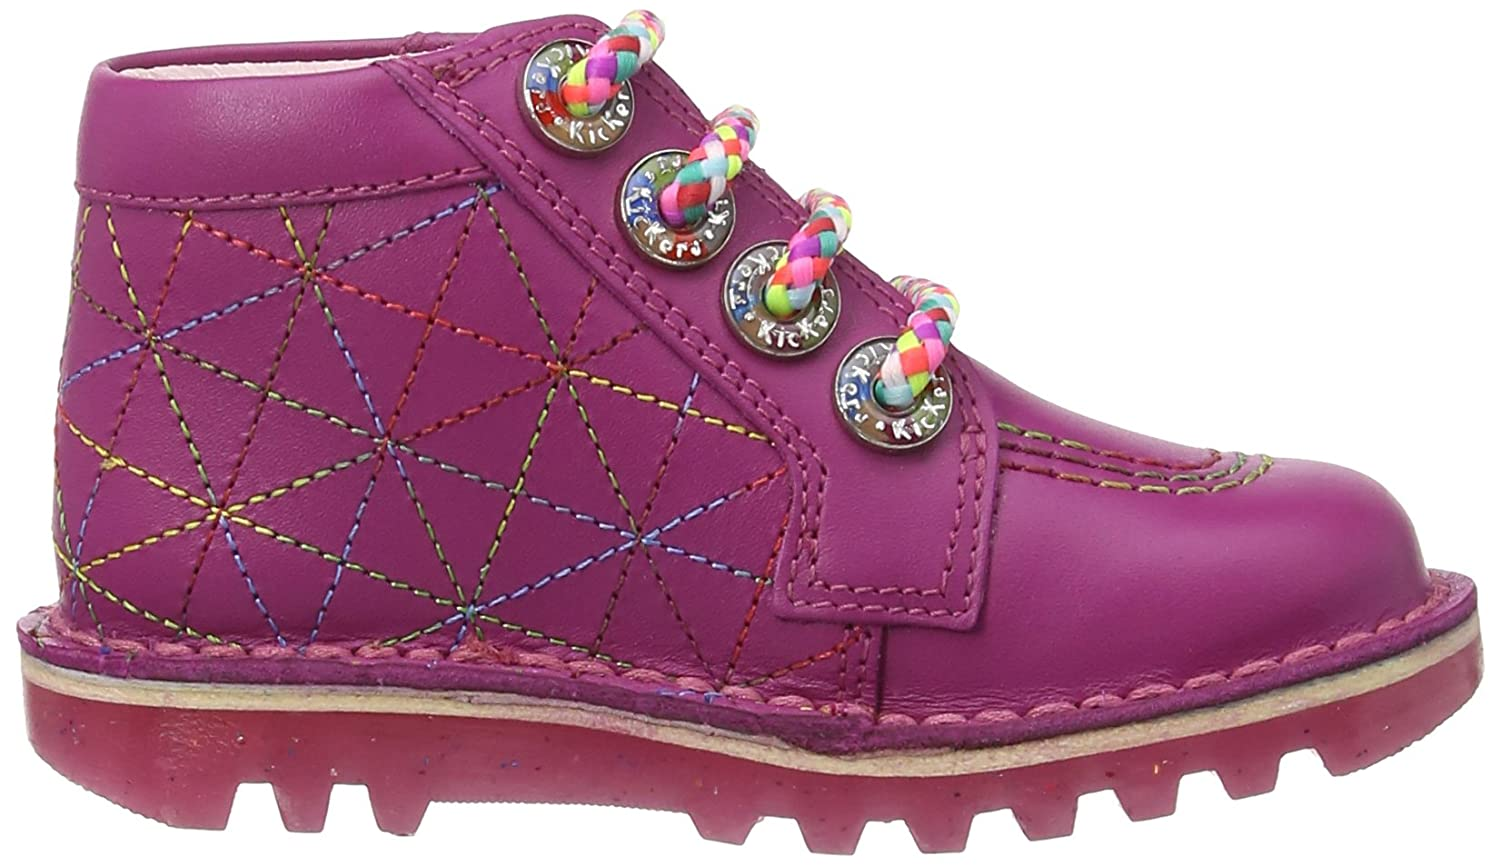 Kickers Girls Kick Zippy Boots 113085 Dark Pink 5 UK Child, 22 EU:  Amazon.co.uk: Shoes & Bags